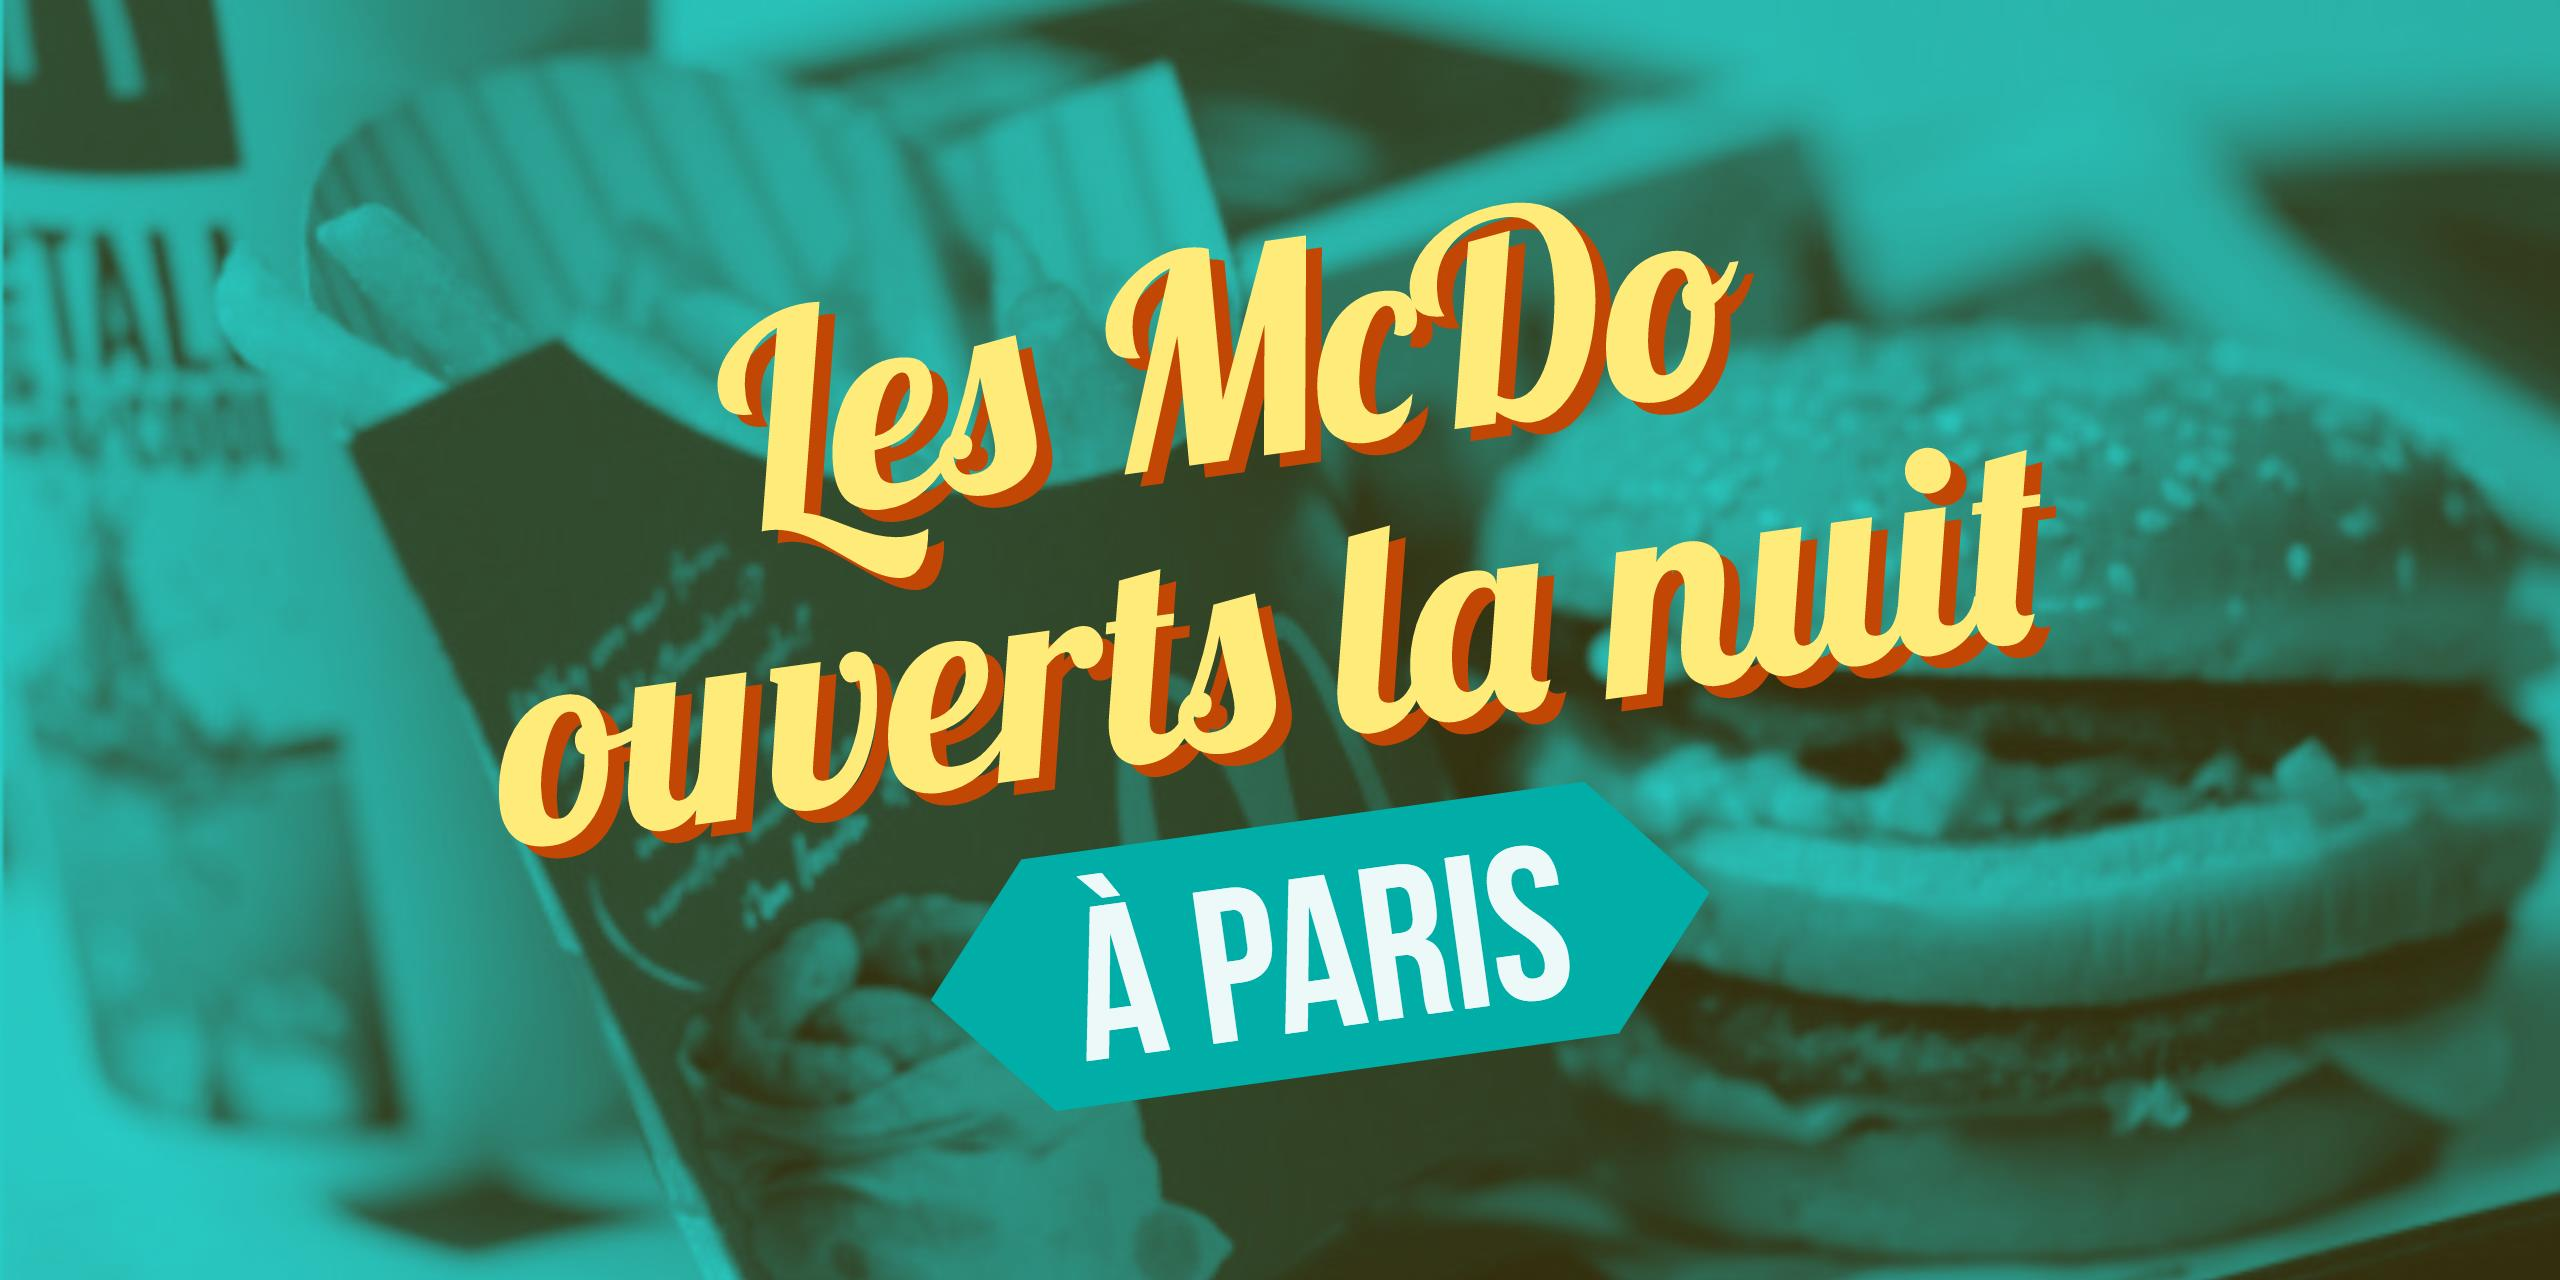 g nial les 5 mcdonald s ouverts 24 24 paris mcdo toute la nuit paris. Black Bedroom Furniture Sets. Home Design Ideas